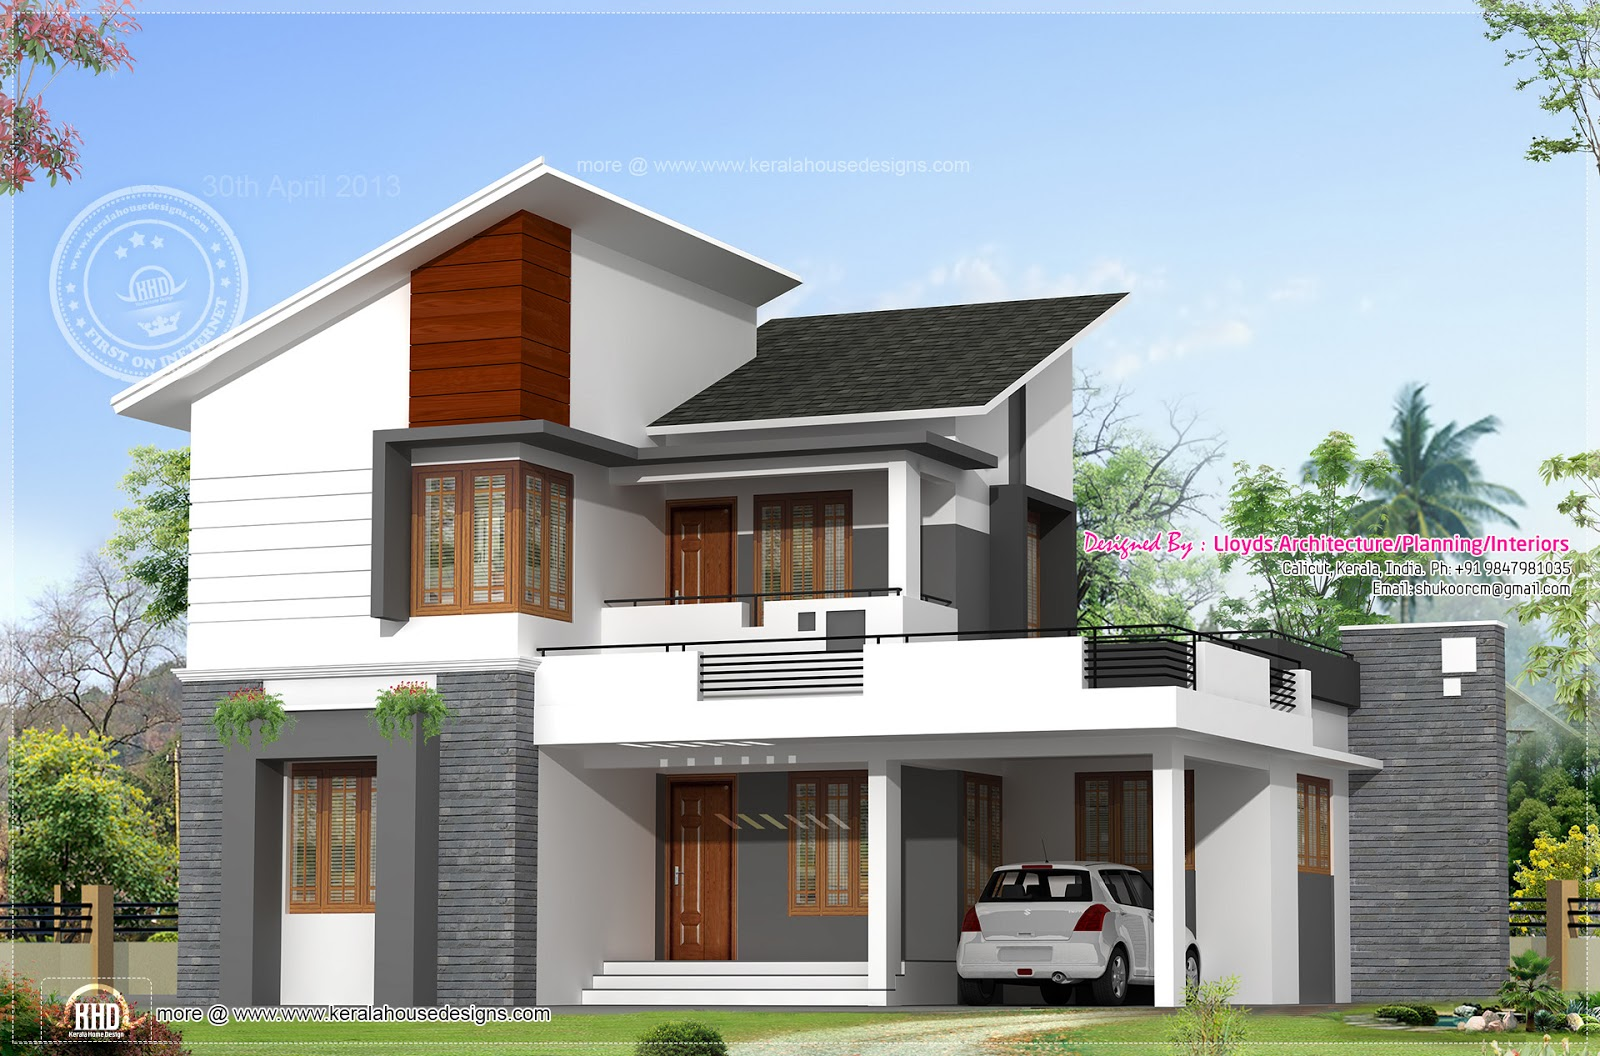 1878 sq.feet free floor plan and elevation | Home Kerala Plans